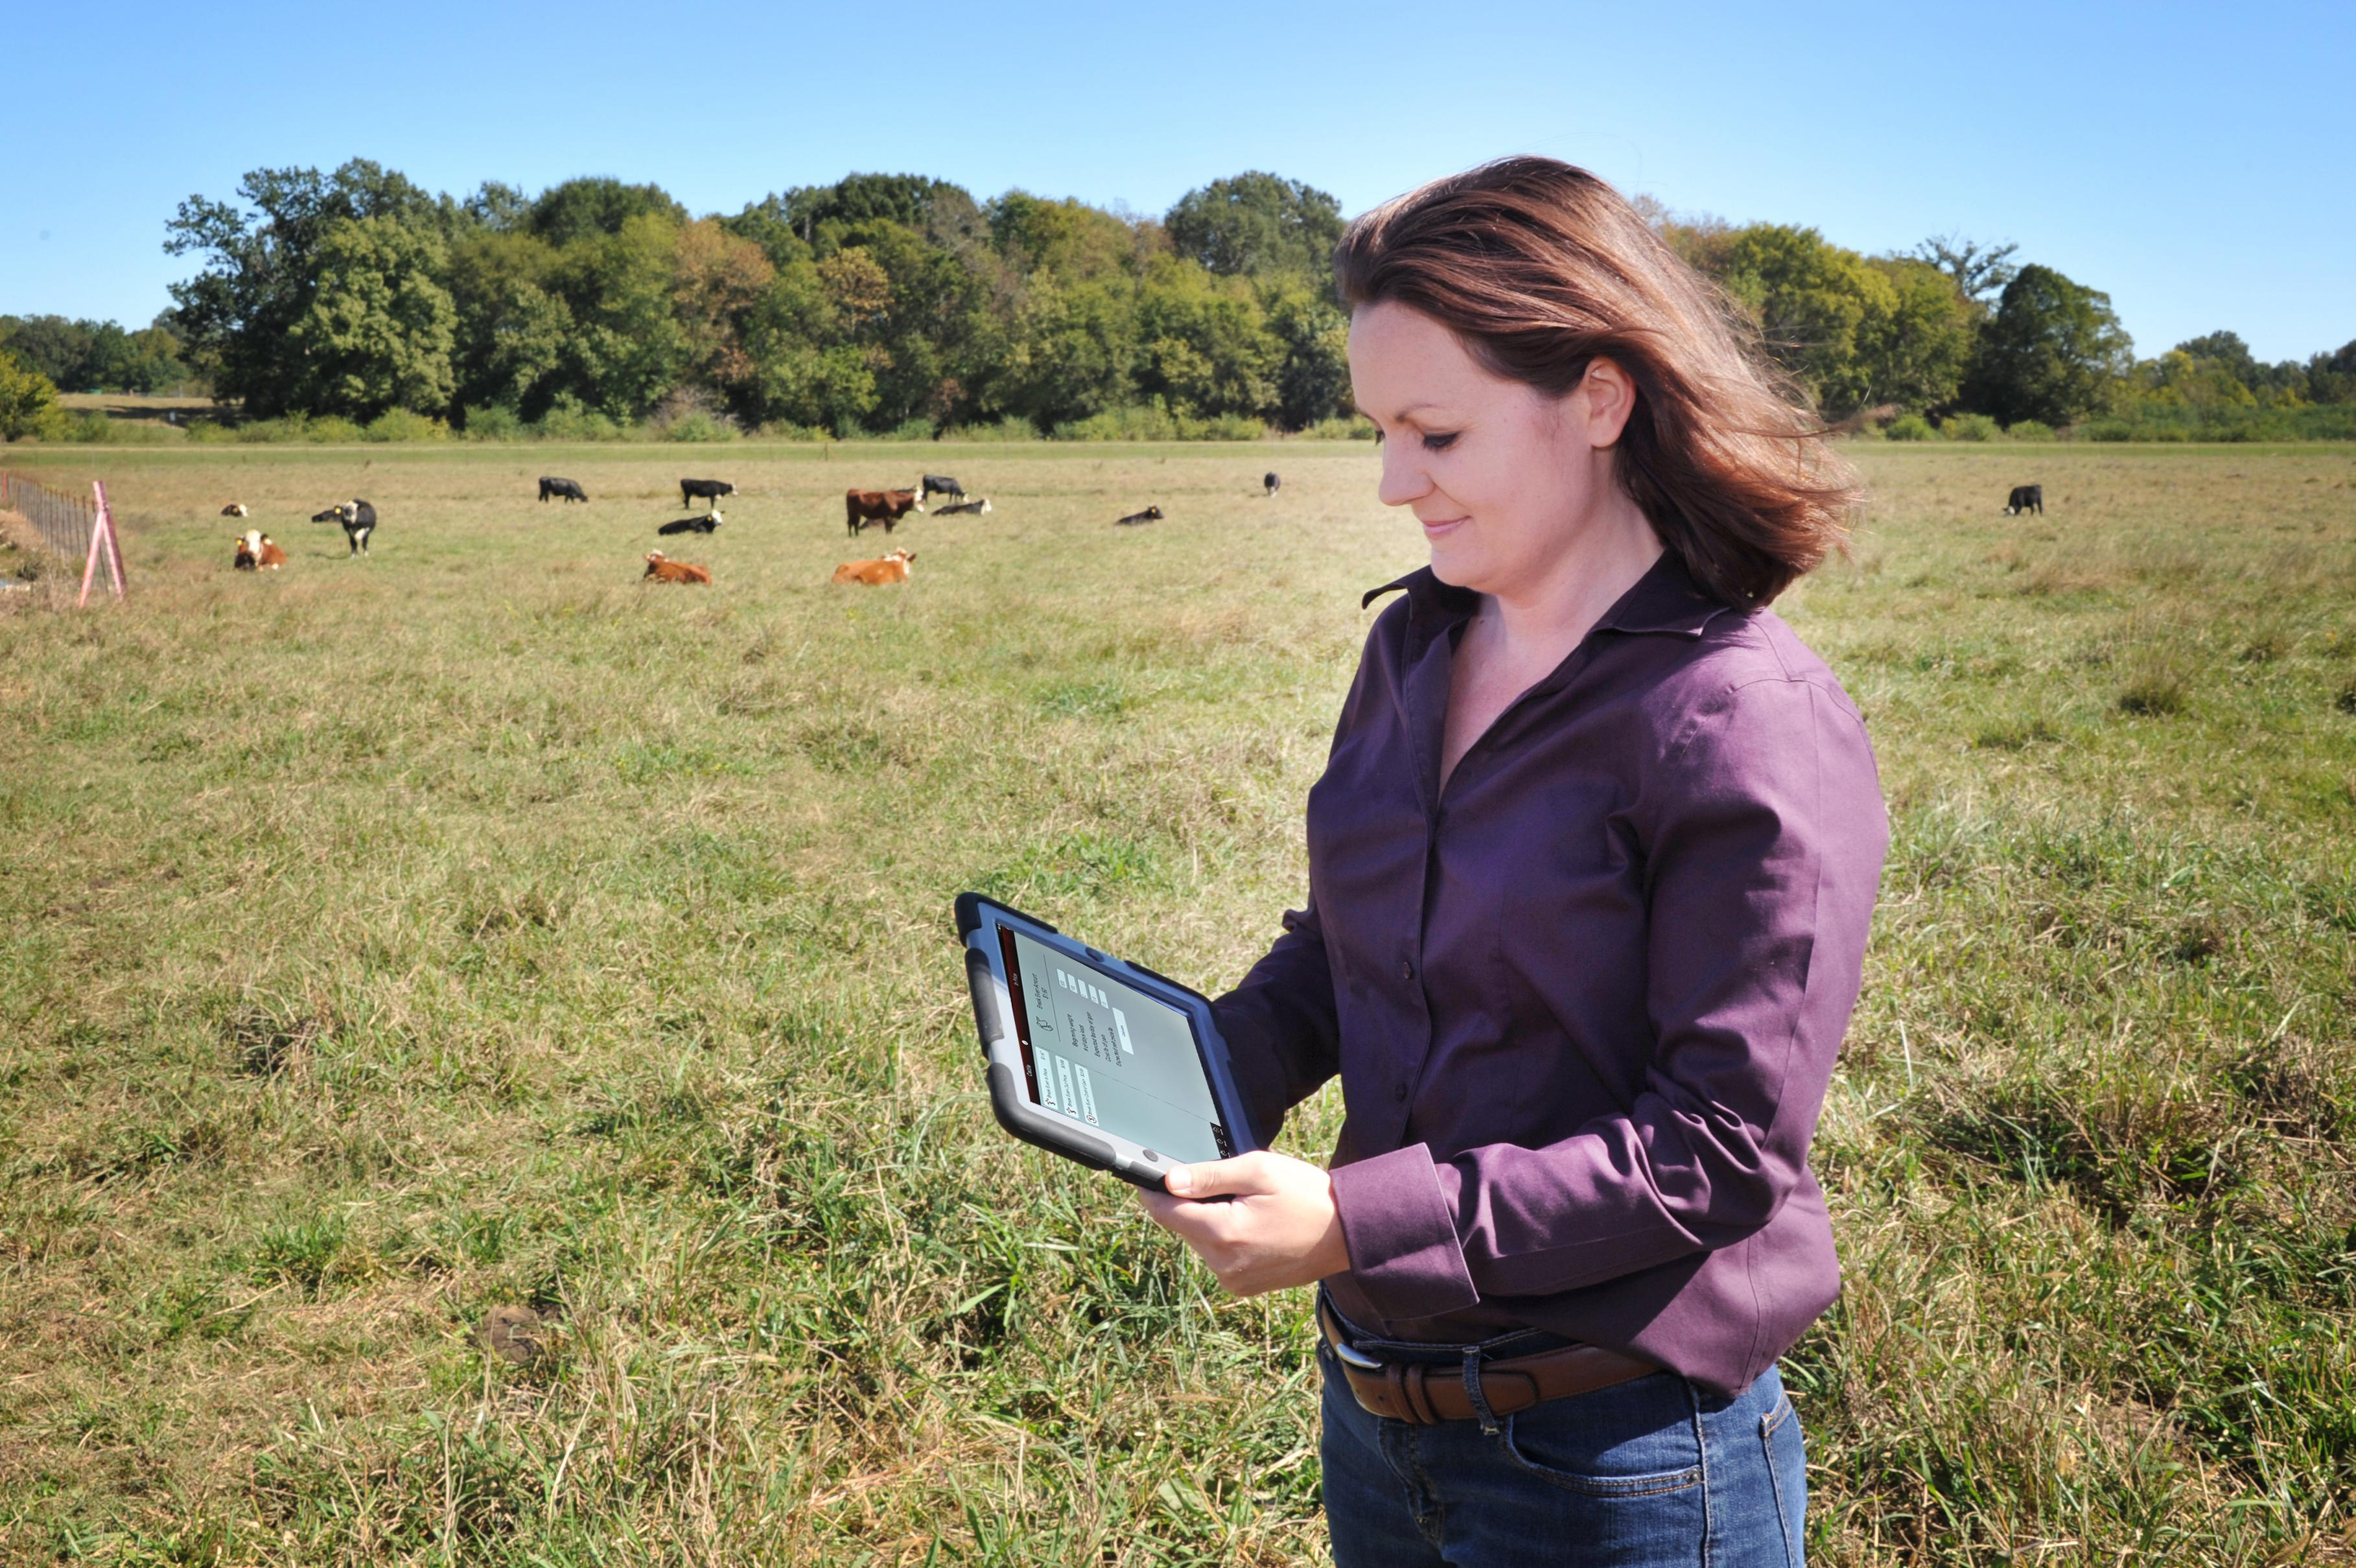 Mississippi State University professor of animal and dairy sciences and Extension beef cattle specialist Jane Parish uses an application on an iPad to review cattle break-even prices while in the field at the Henry H. Leveck Research Farm on the south side of the MSU campus in December 2013. (File Photo by MSU Ag Communications/Scott Corey)